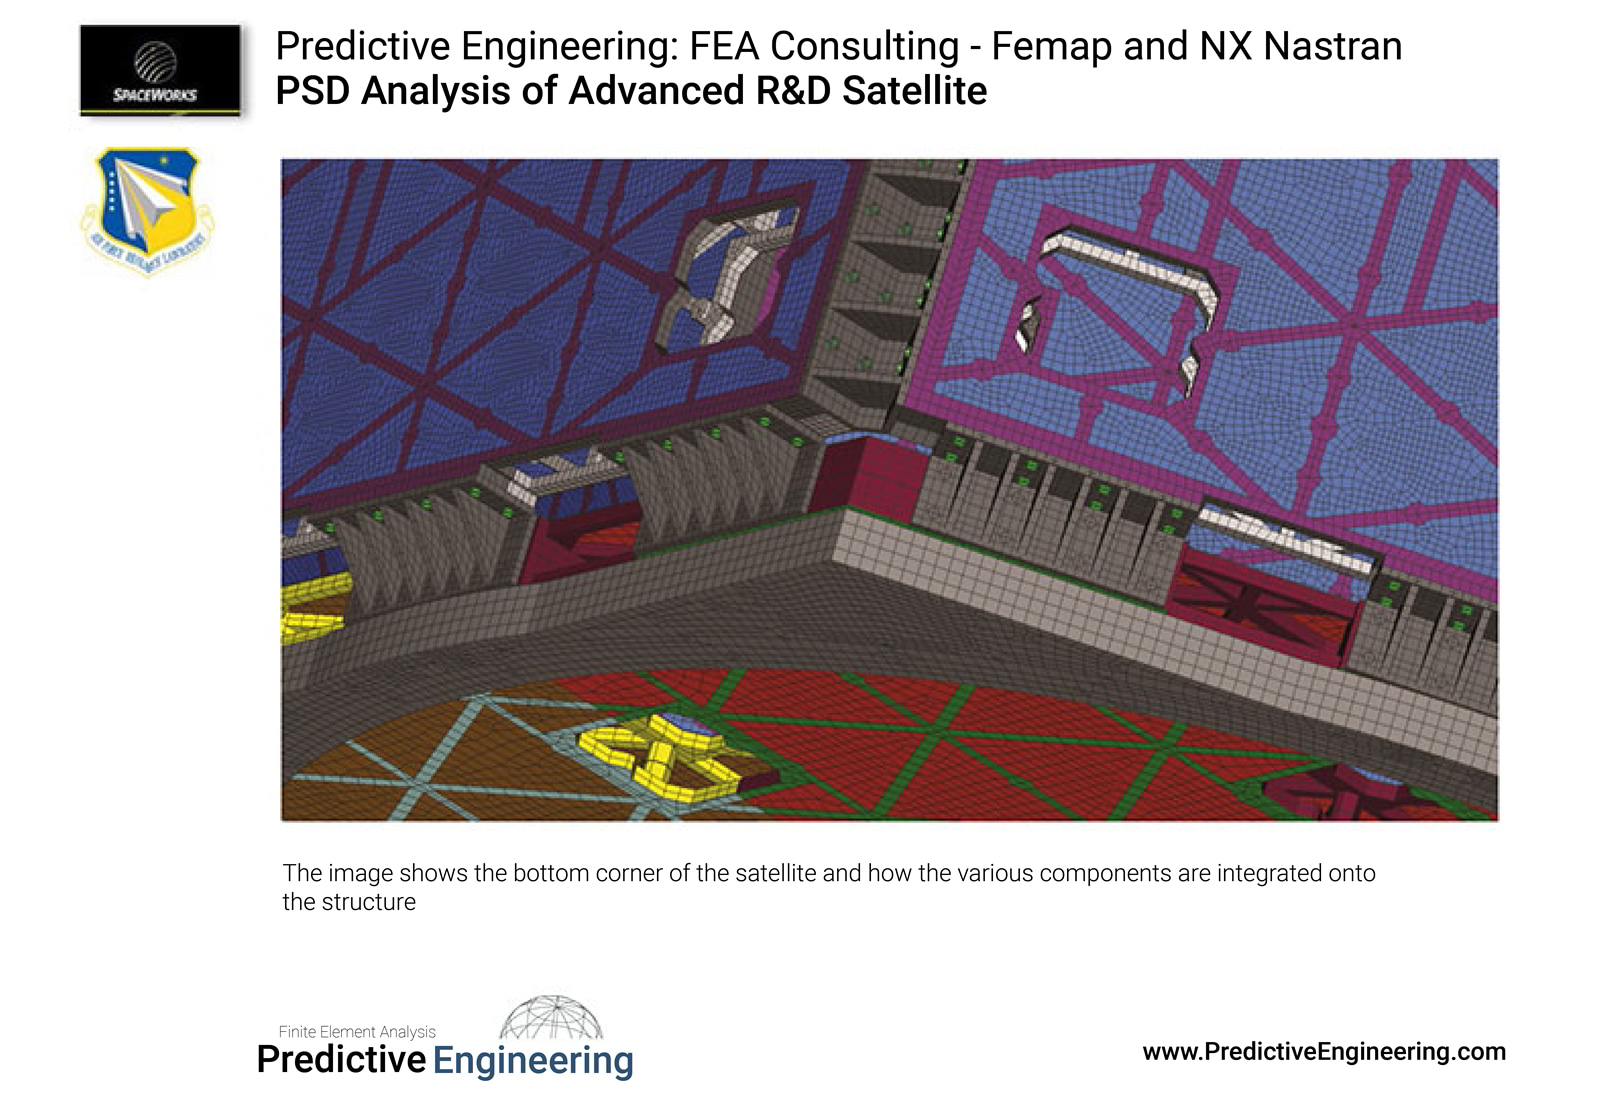 Integration of corner panels into PnP FEA satellite model - Predictive Engineering FEA Consulting Services